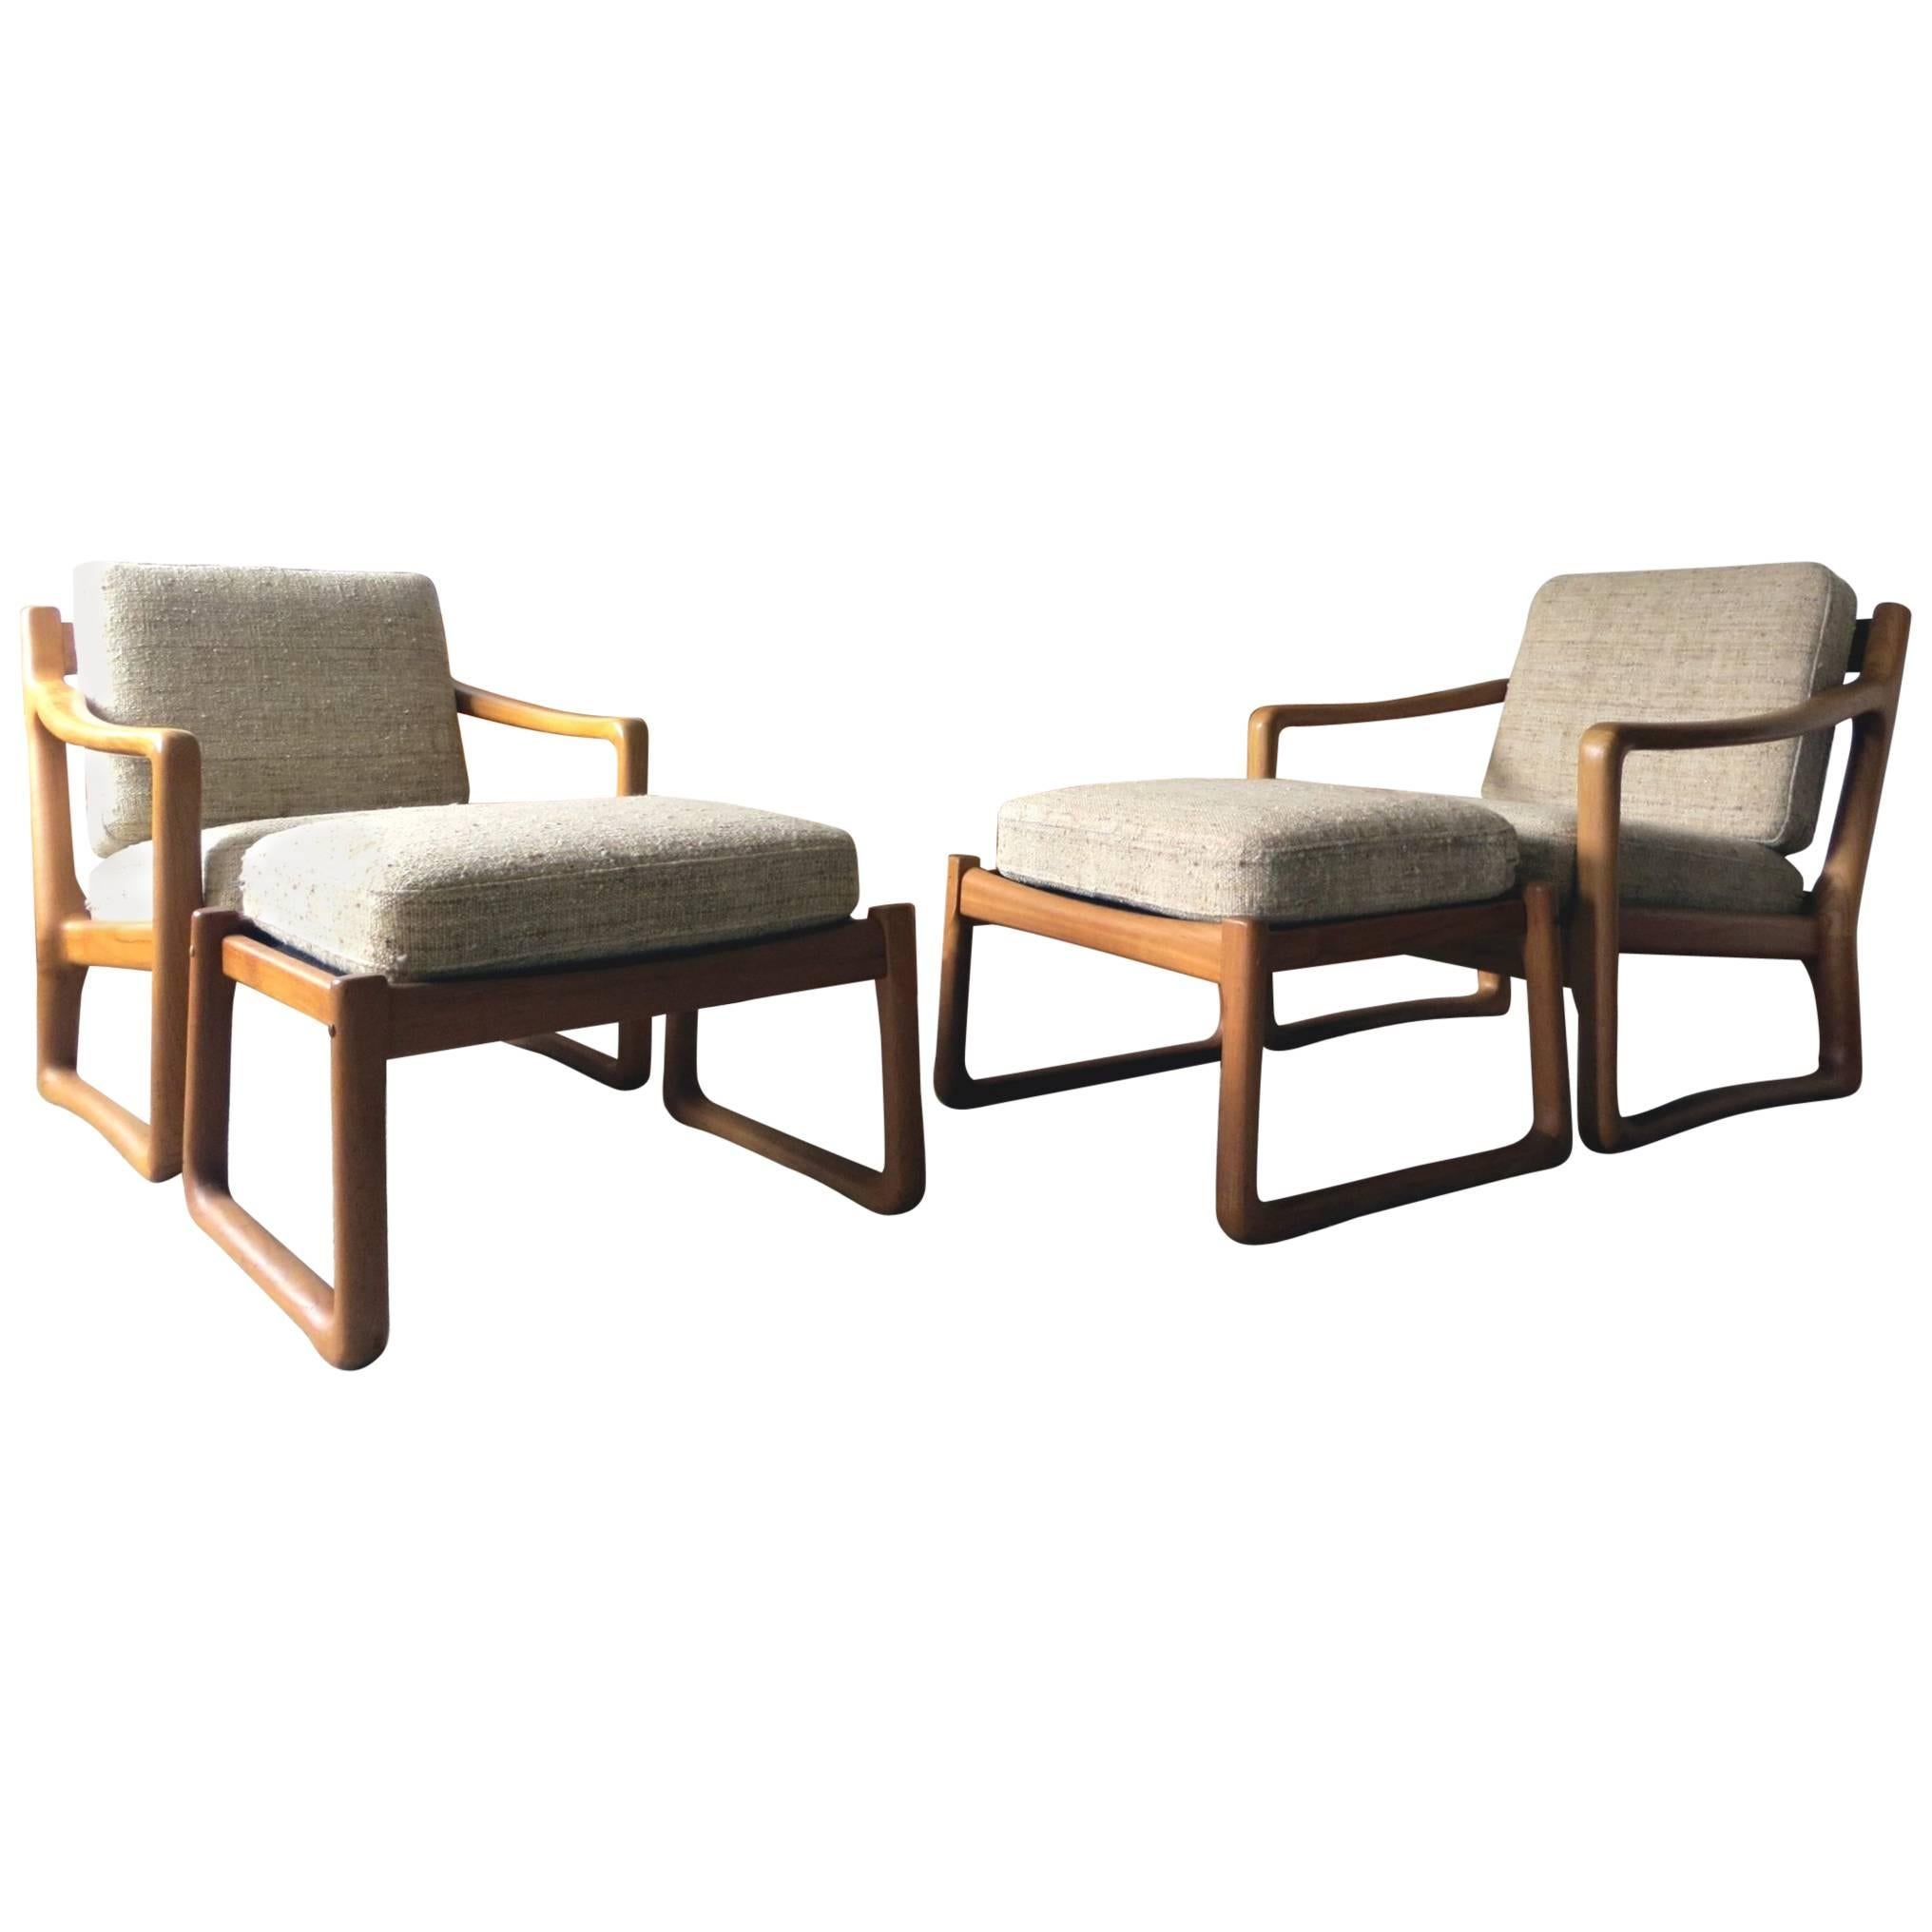 Pair Of Juul Kristensen / JK Denmark Solid Teak Easy Chairs And Ottomans,  1960s For